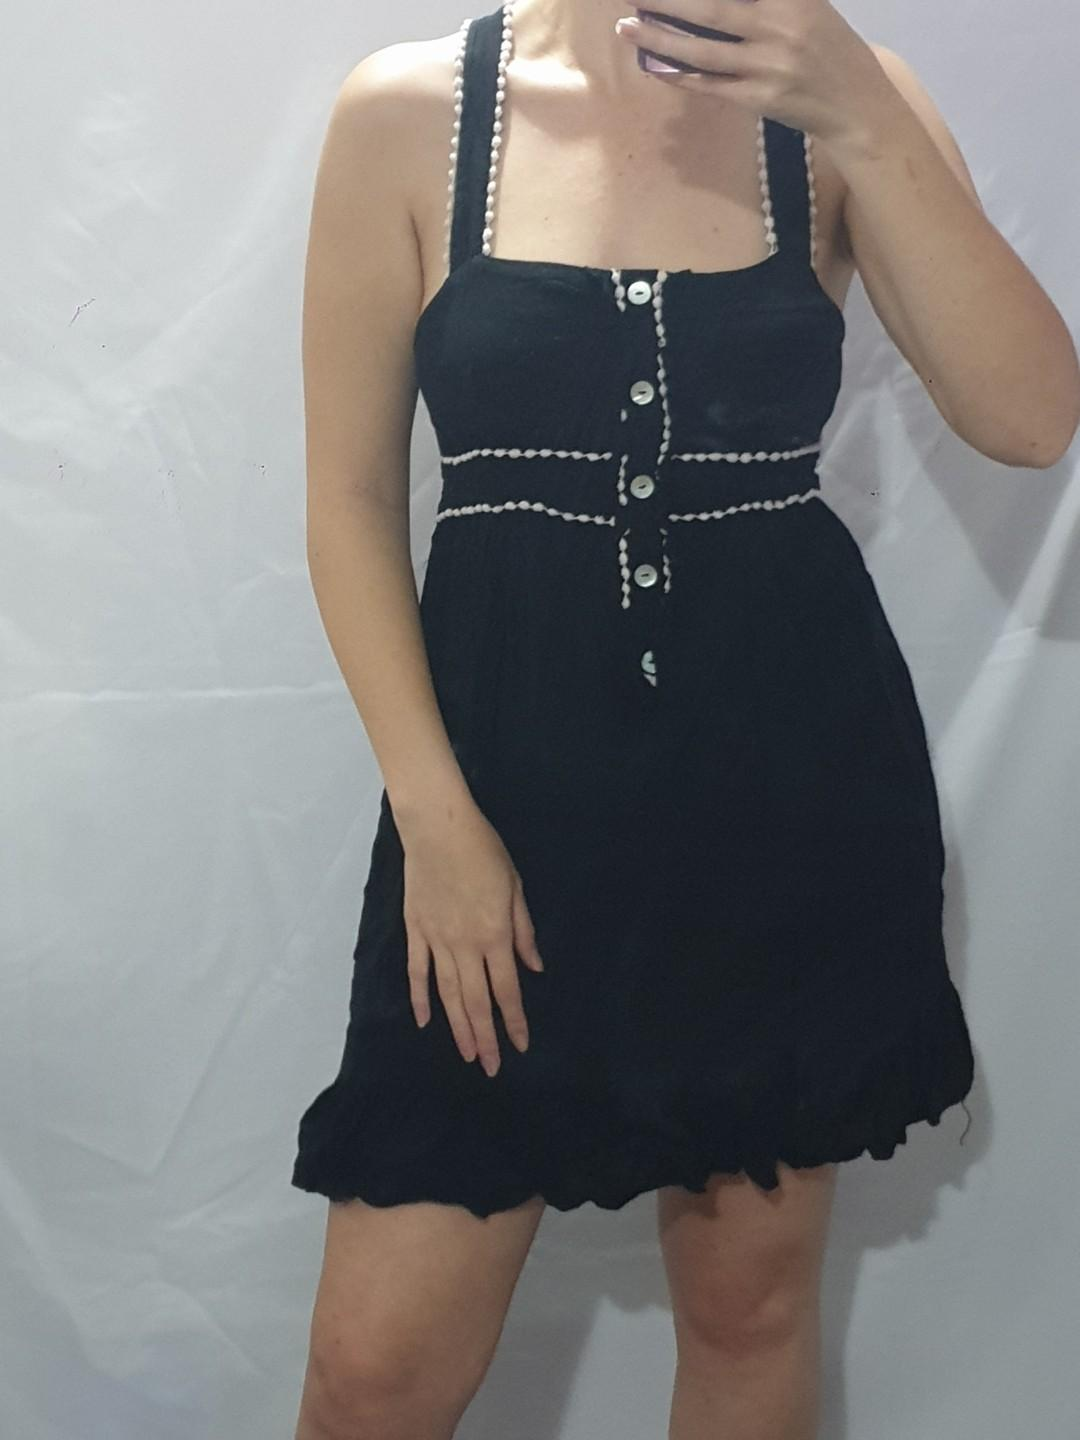 Size 12 vintage look dress with ivory trimming #76